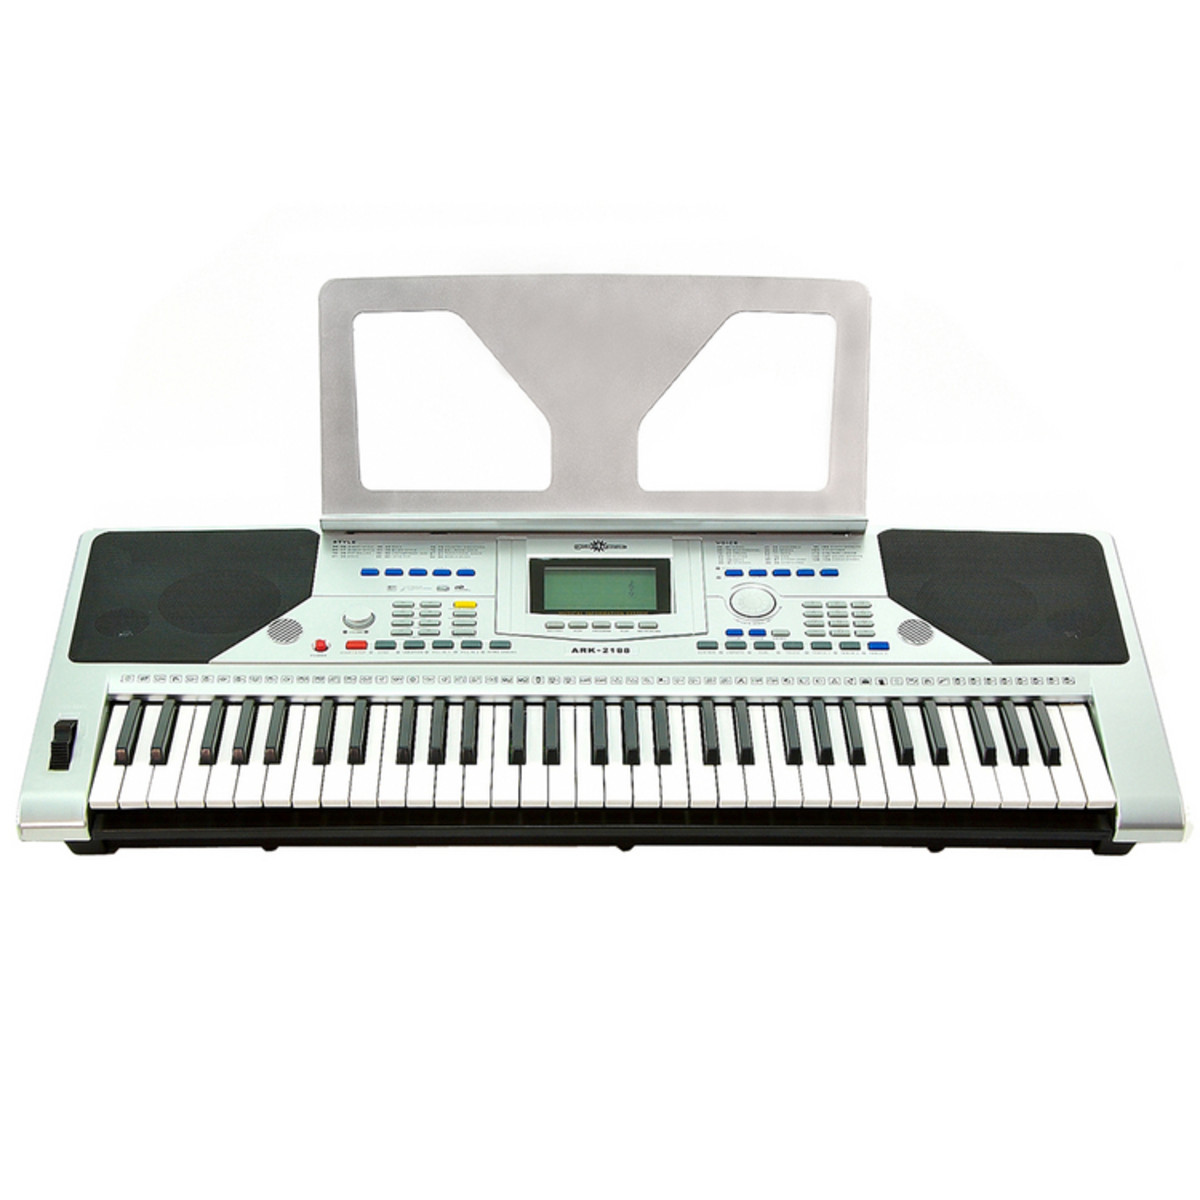 disc ak 2188 keyboard by gear4music at gear4music. Black Bedroom Furniture Sets. Home Design Ideas